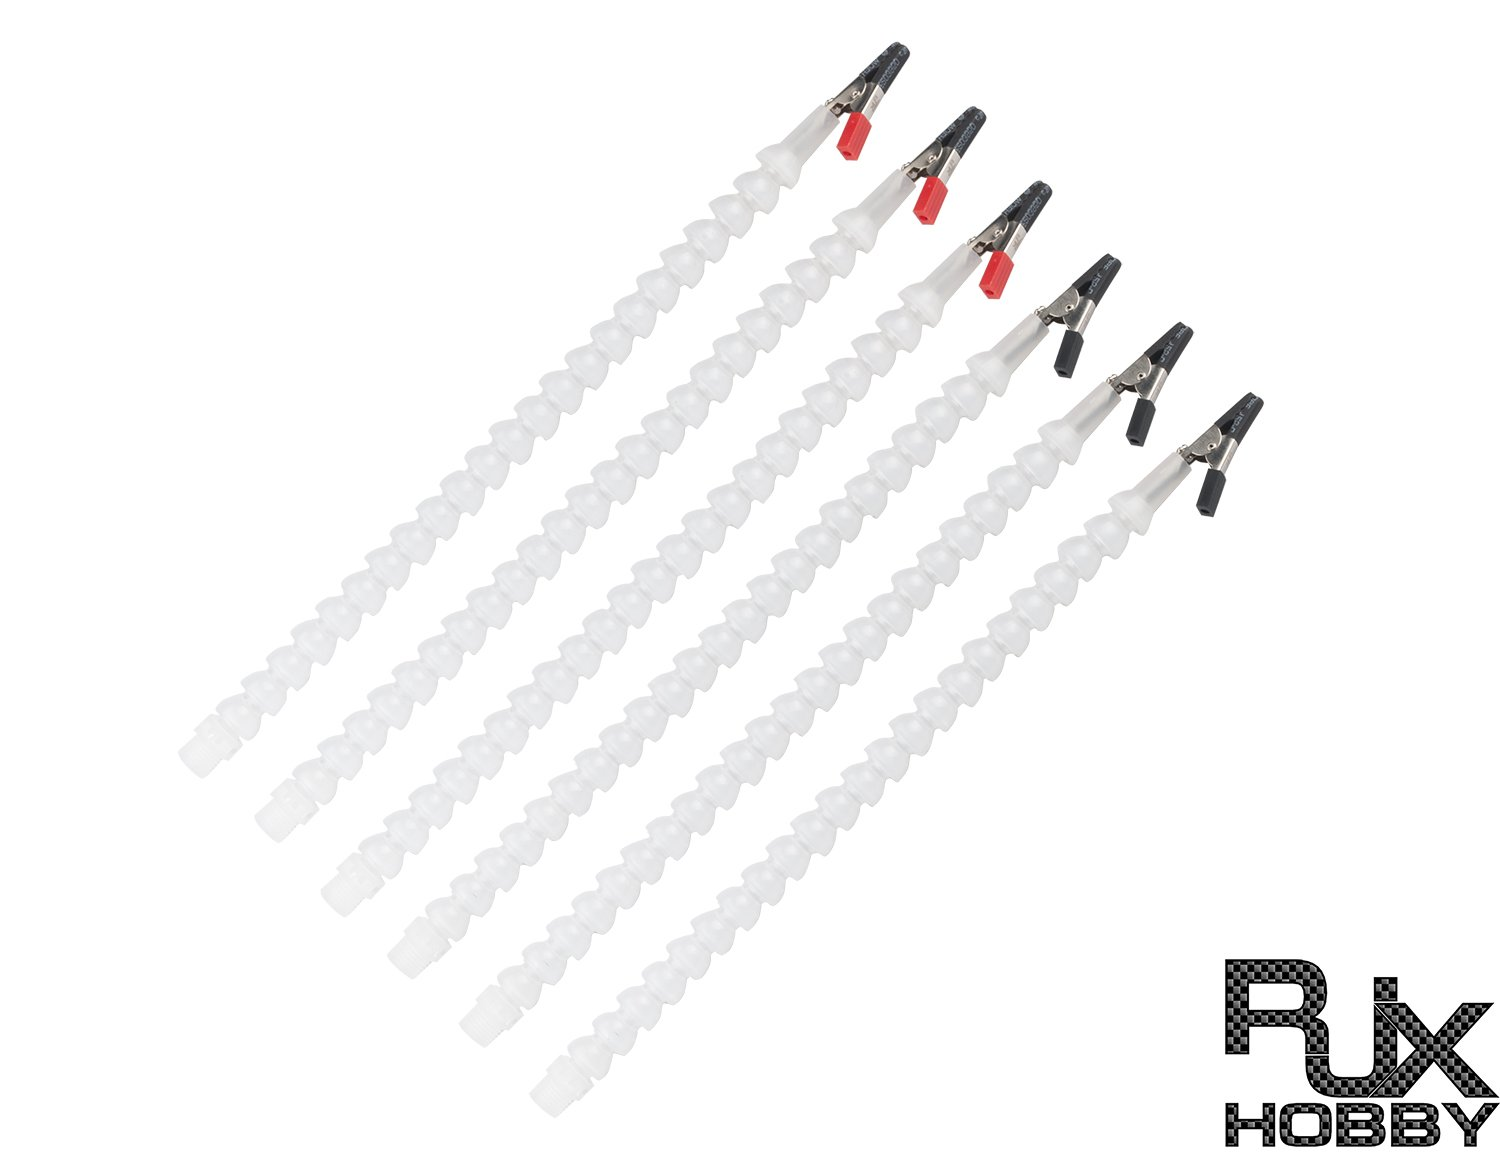 RJXHOBBY 6 Helping Hands Third Hand Soldering Arms Flexible Arms With 6 Swiveling Alligator Clips